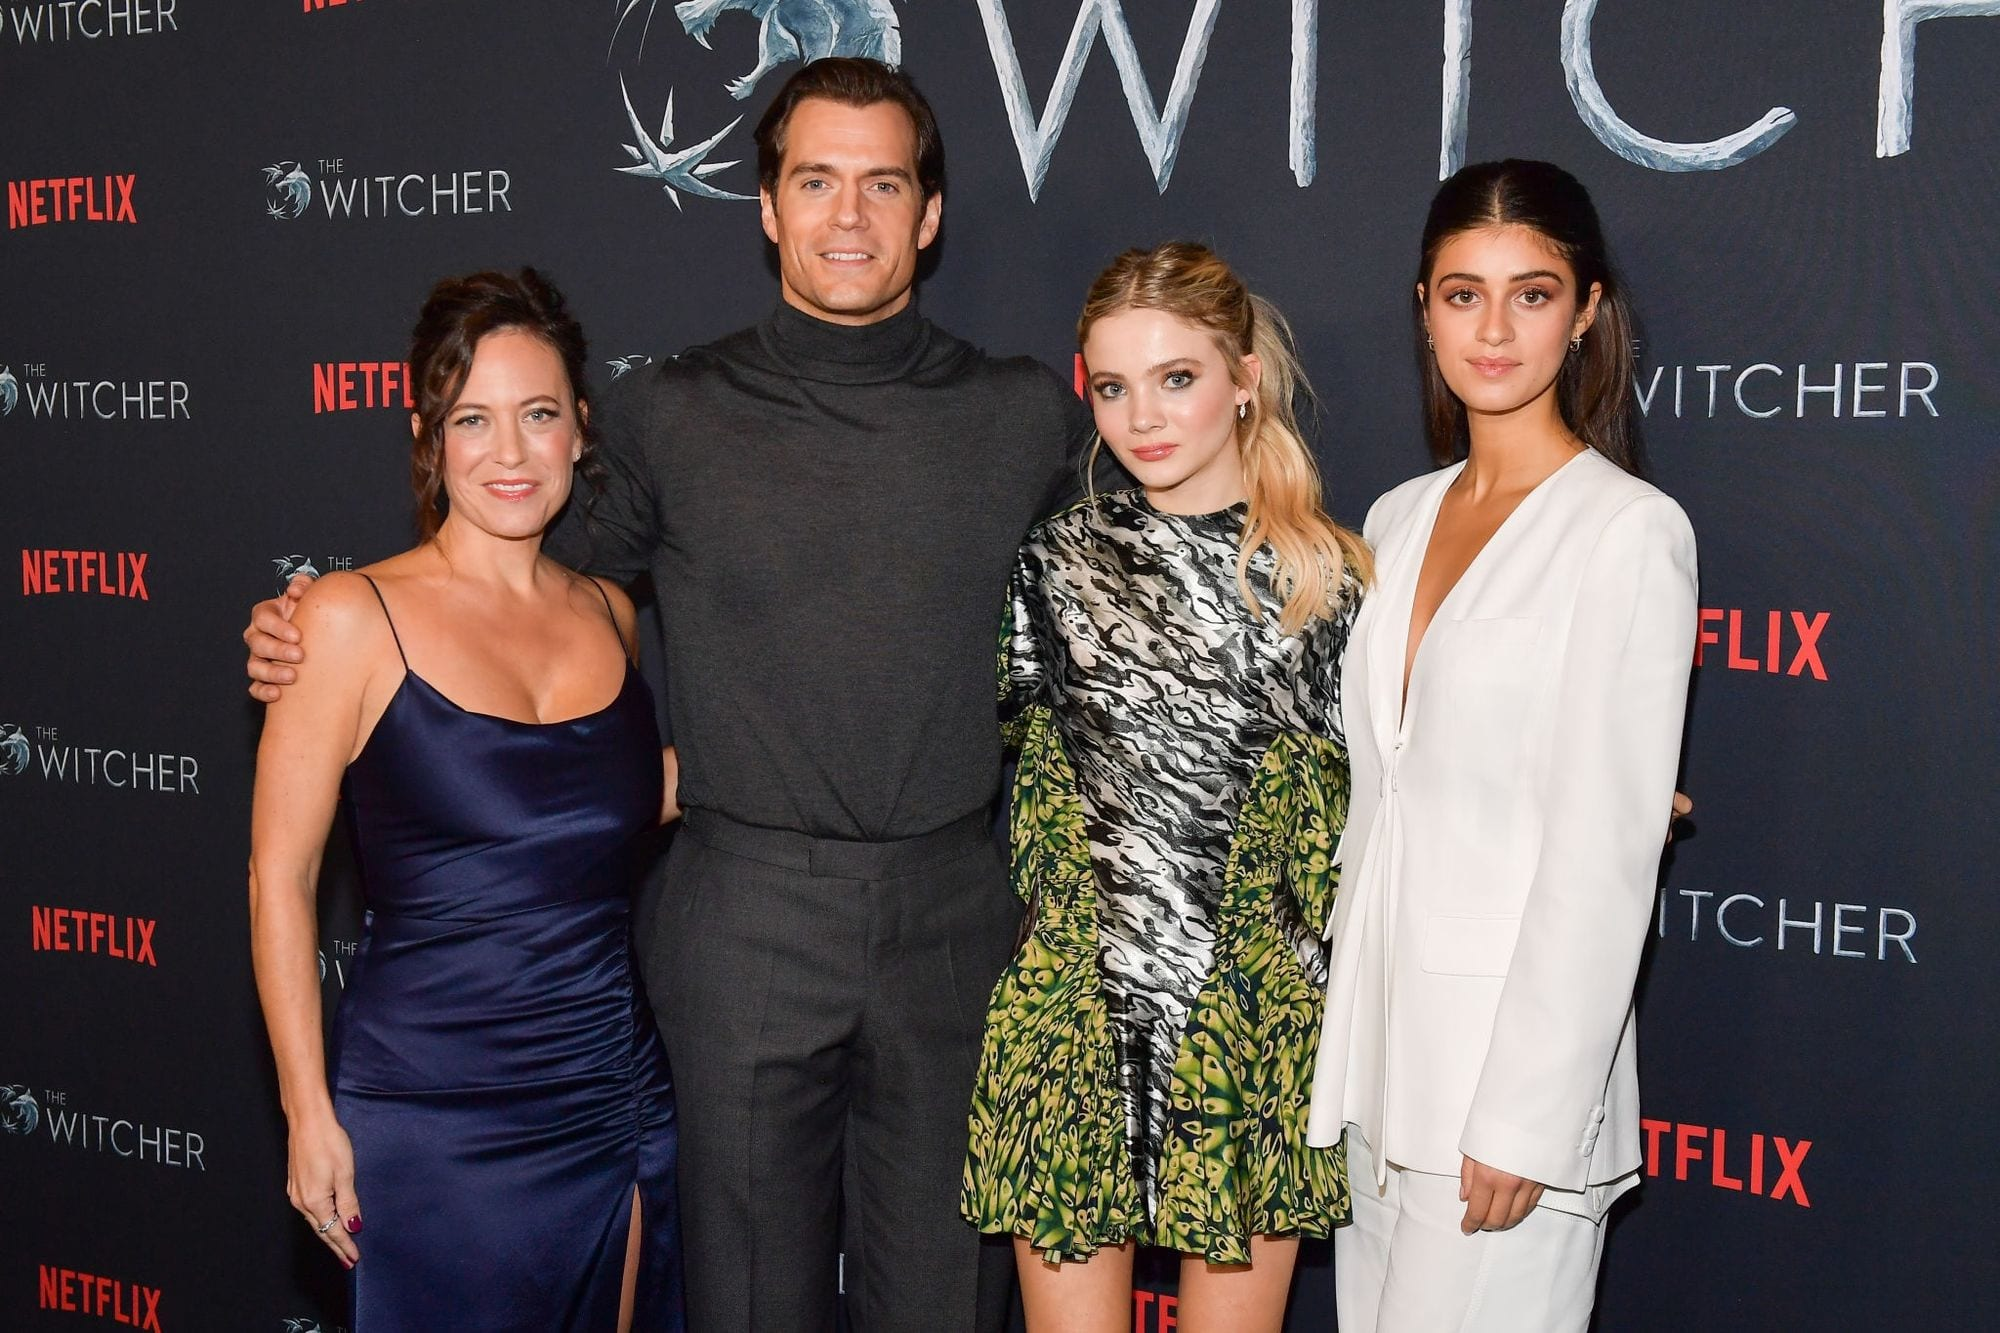 Lauren Schmidt, Henry Cavill, Freya Allan and Anya Chalotra The Witcher Fan Experience Los Angeles